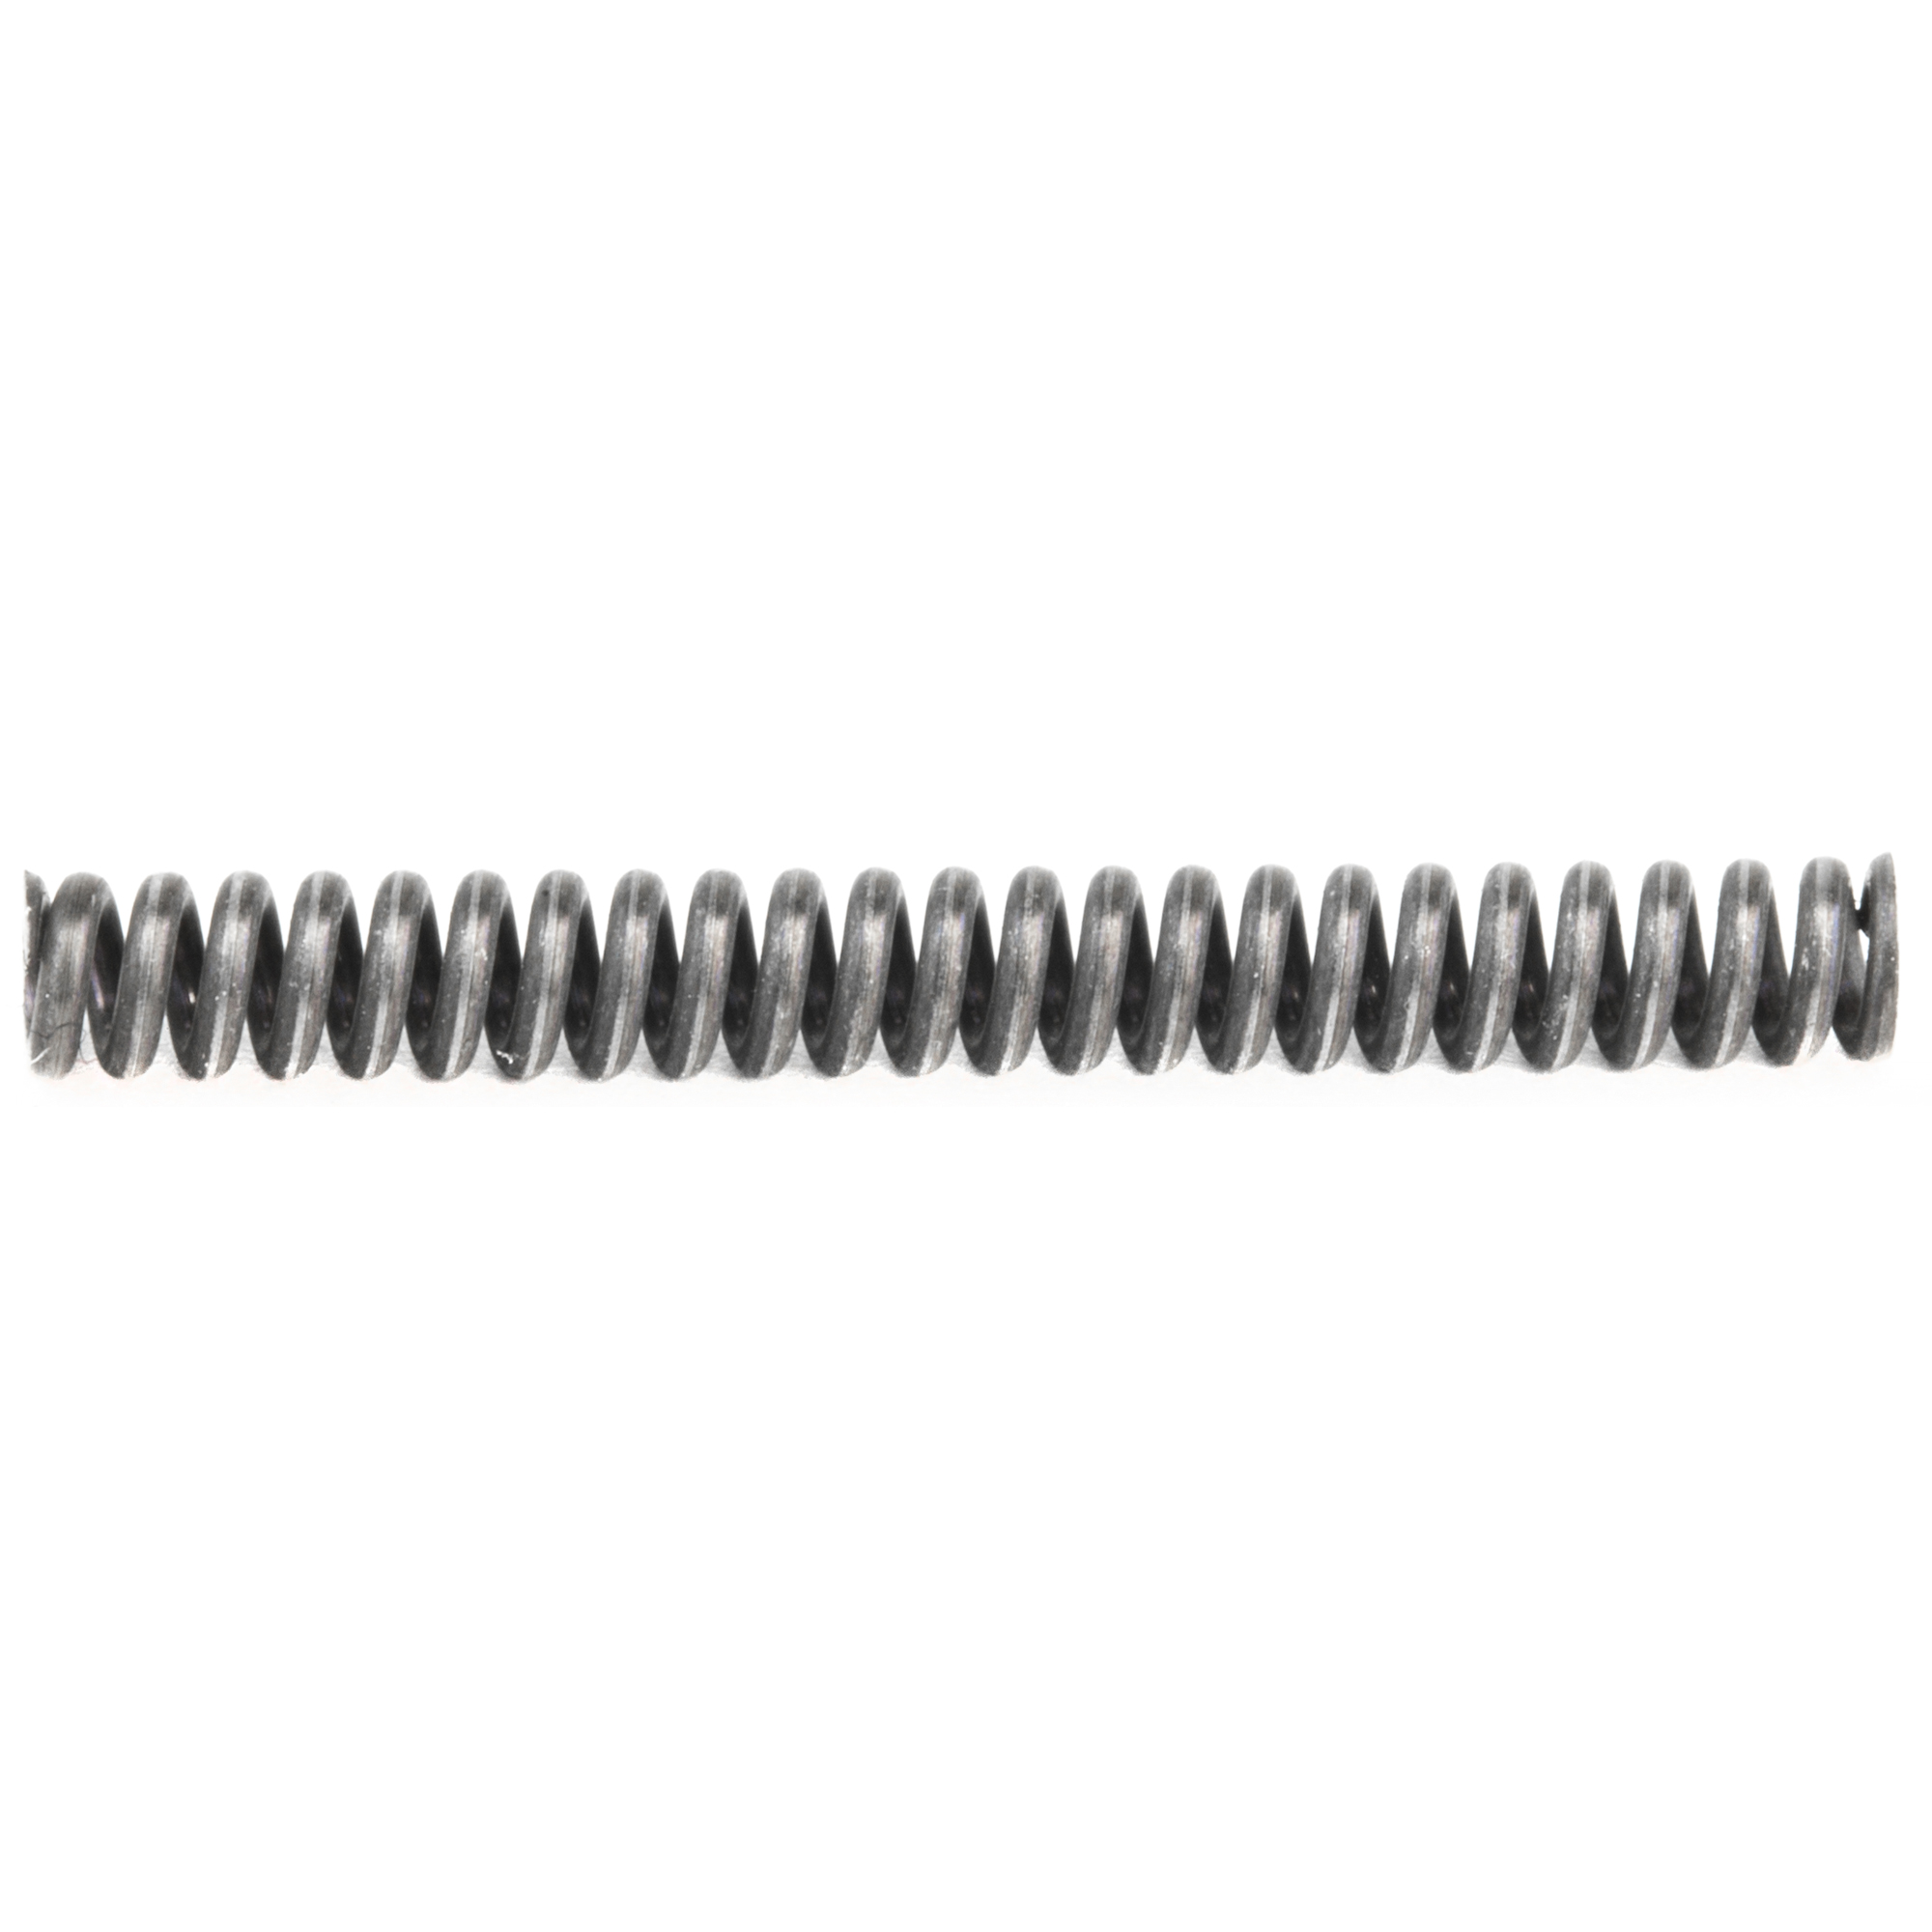 This is a 20-pack of AR-15 selector detent springs made from Hi Tensile Music Wire. Made in the USA.